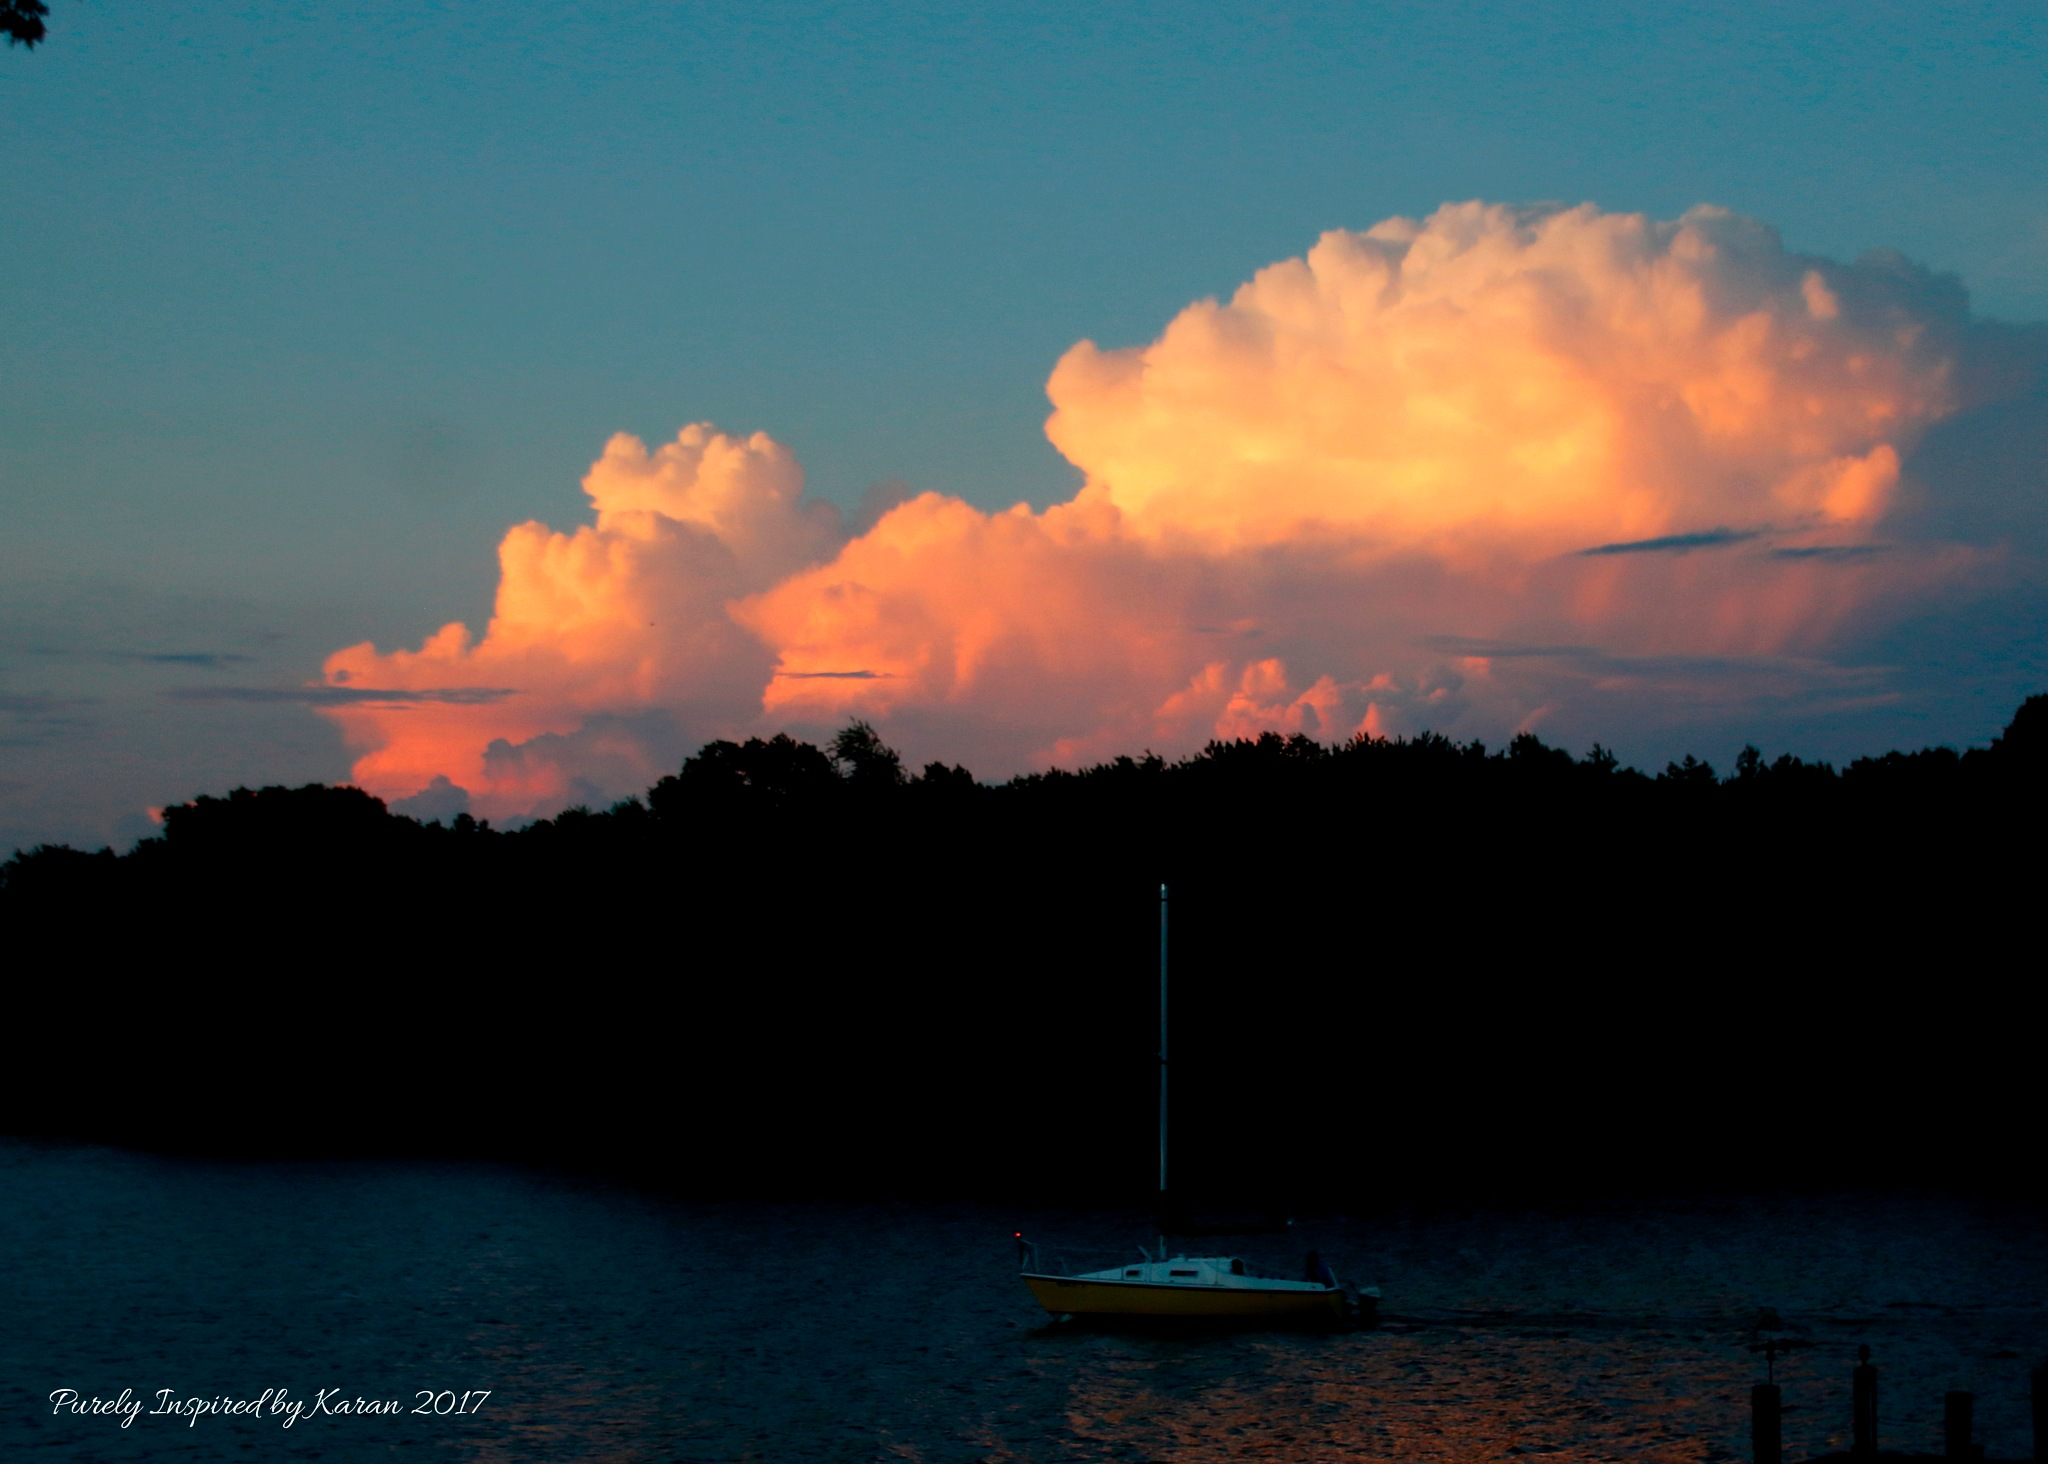 Storm Clouds at Sunset by Purely Inspired by Karan